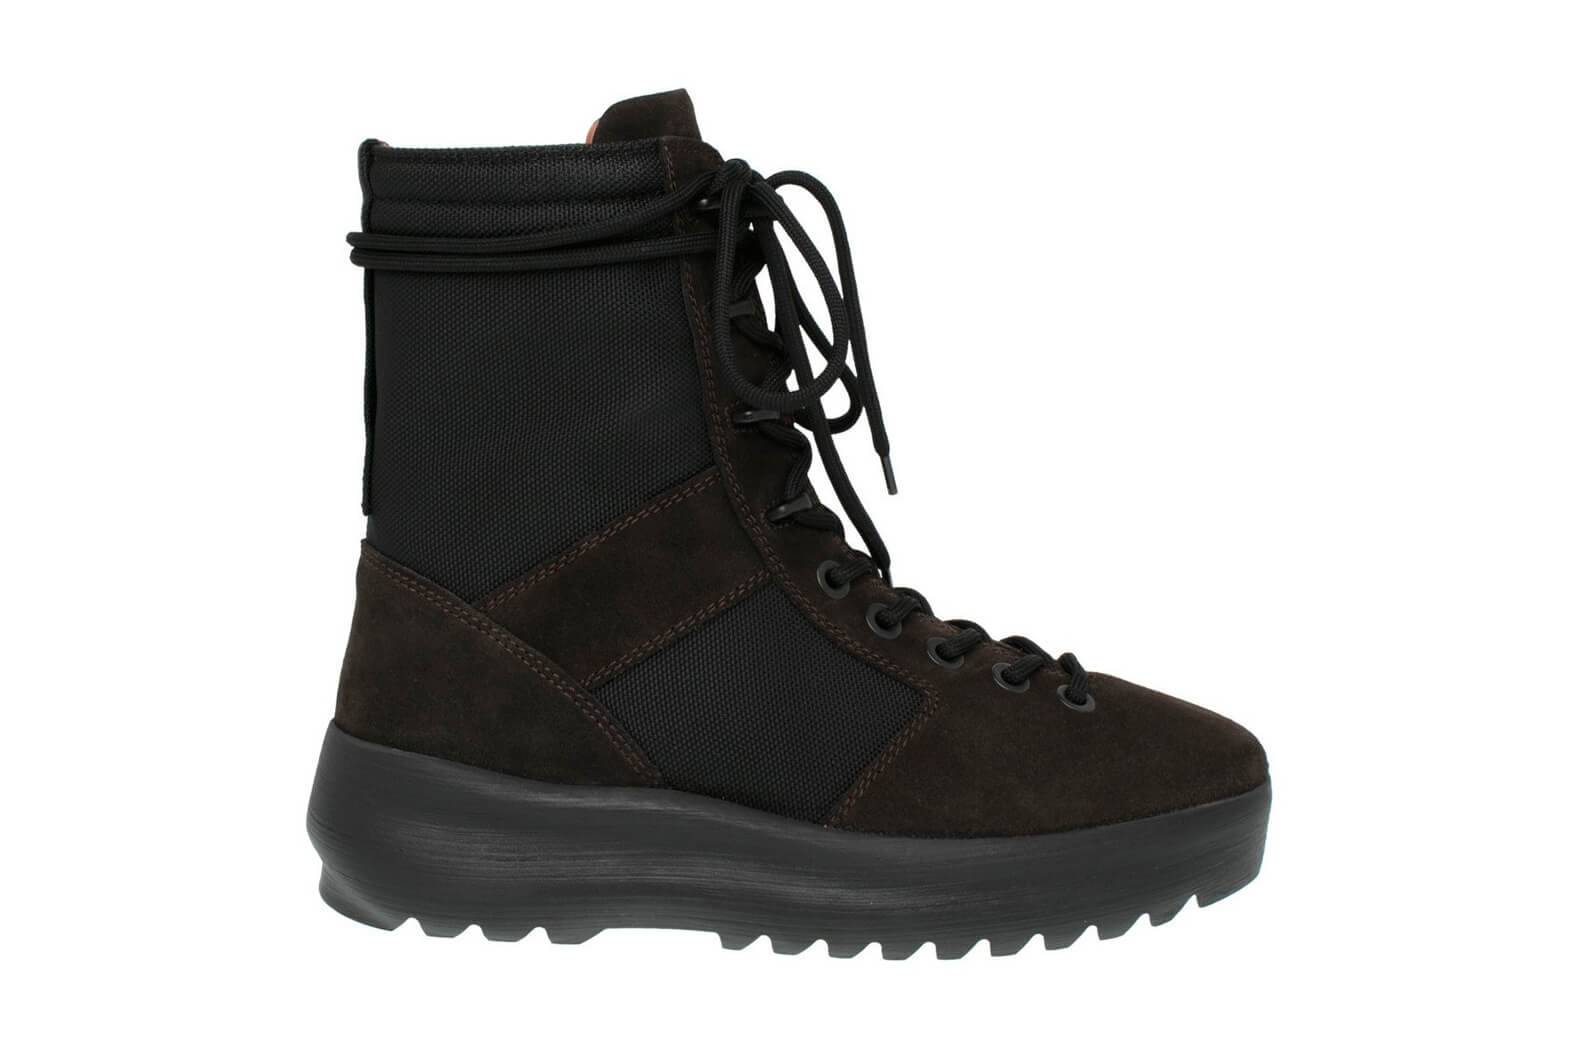 kanye-west-yeezy-season-3-military-boot-onyx-1